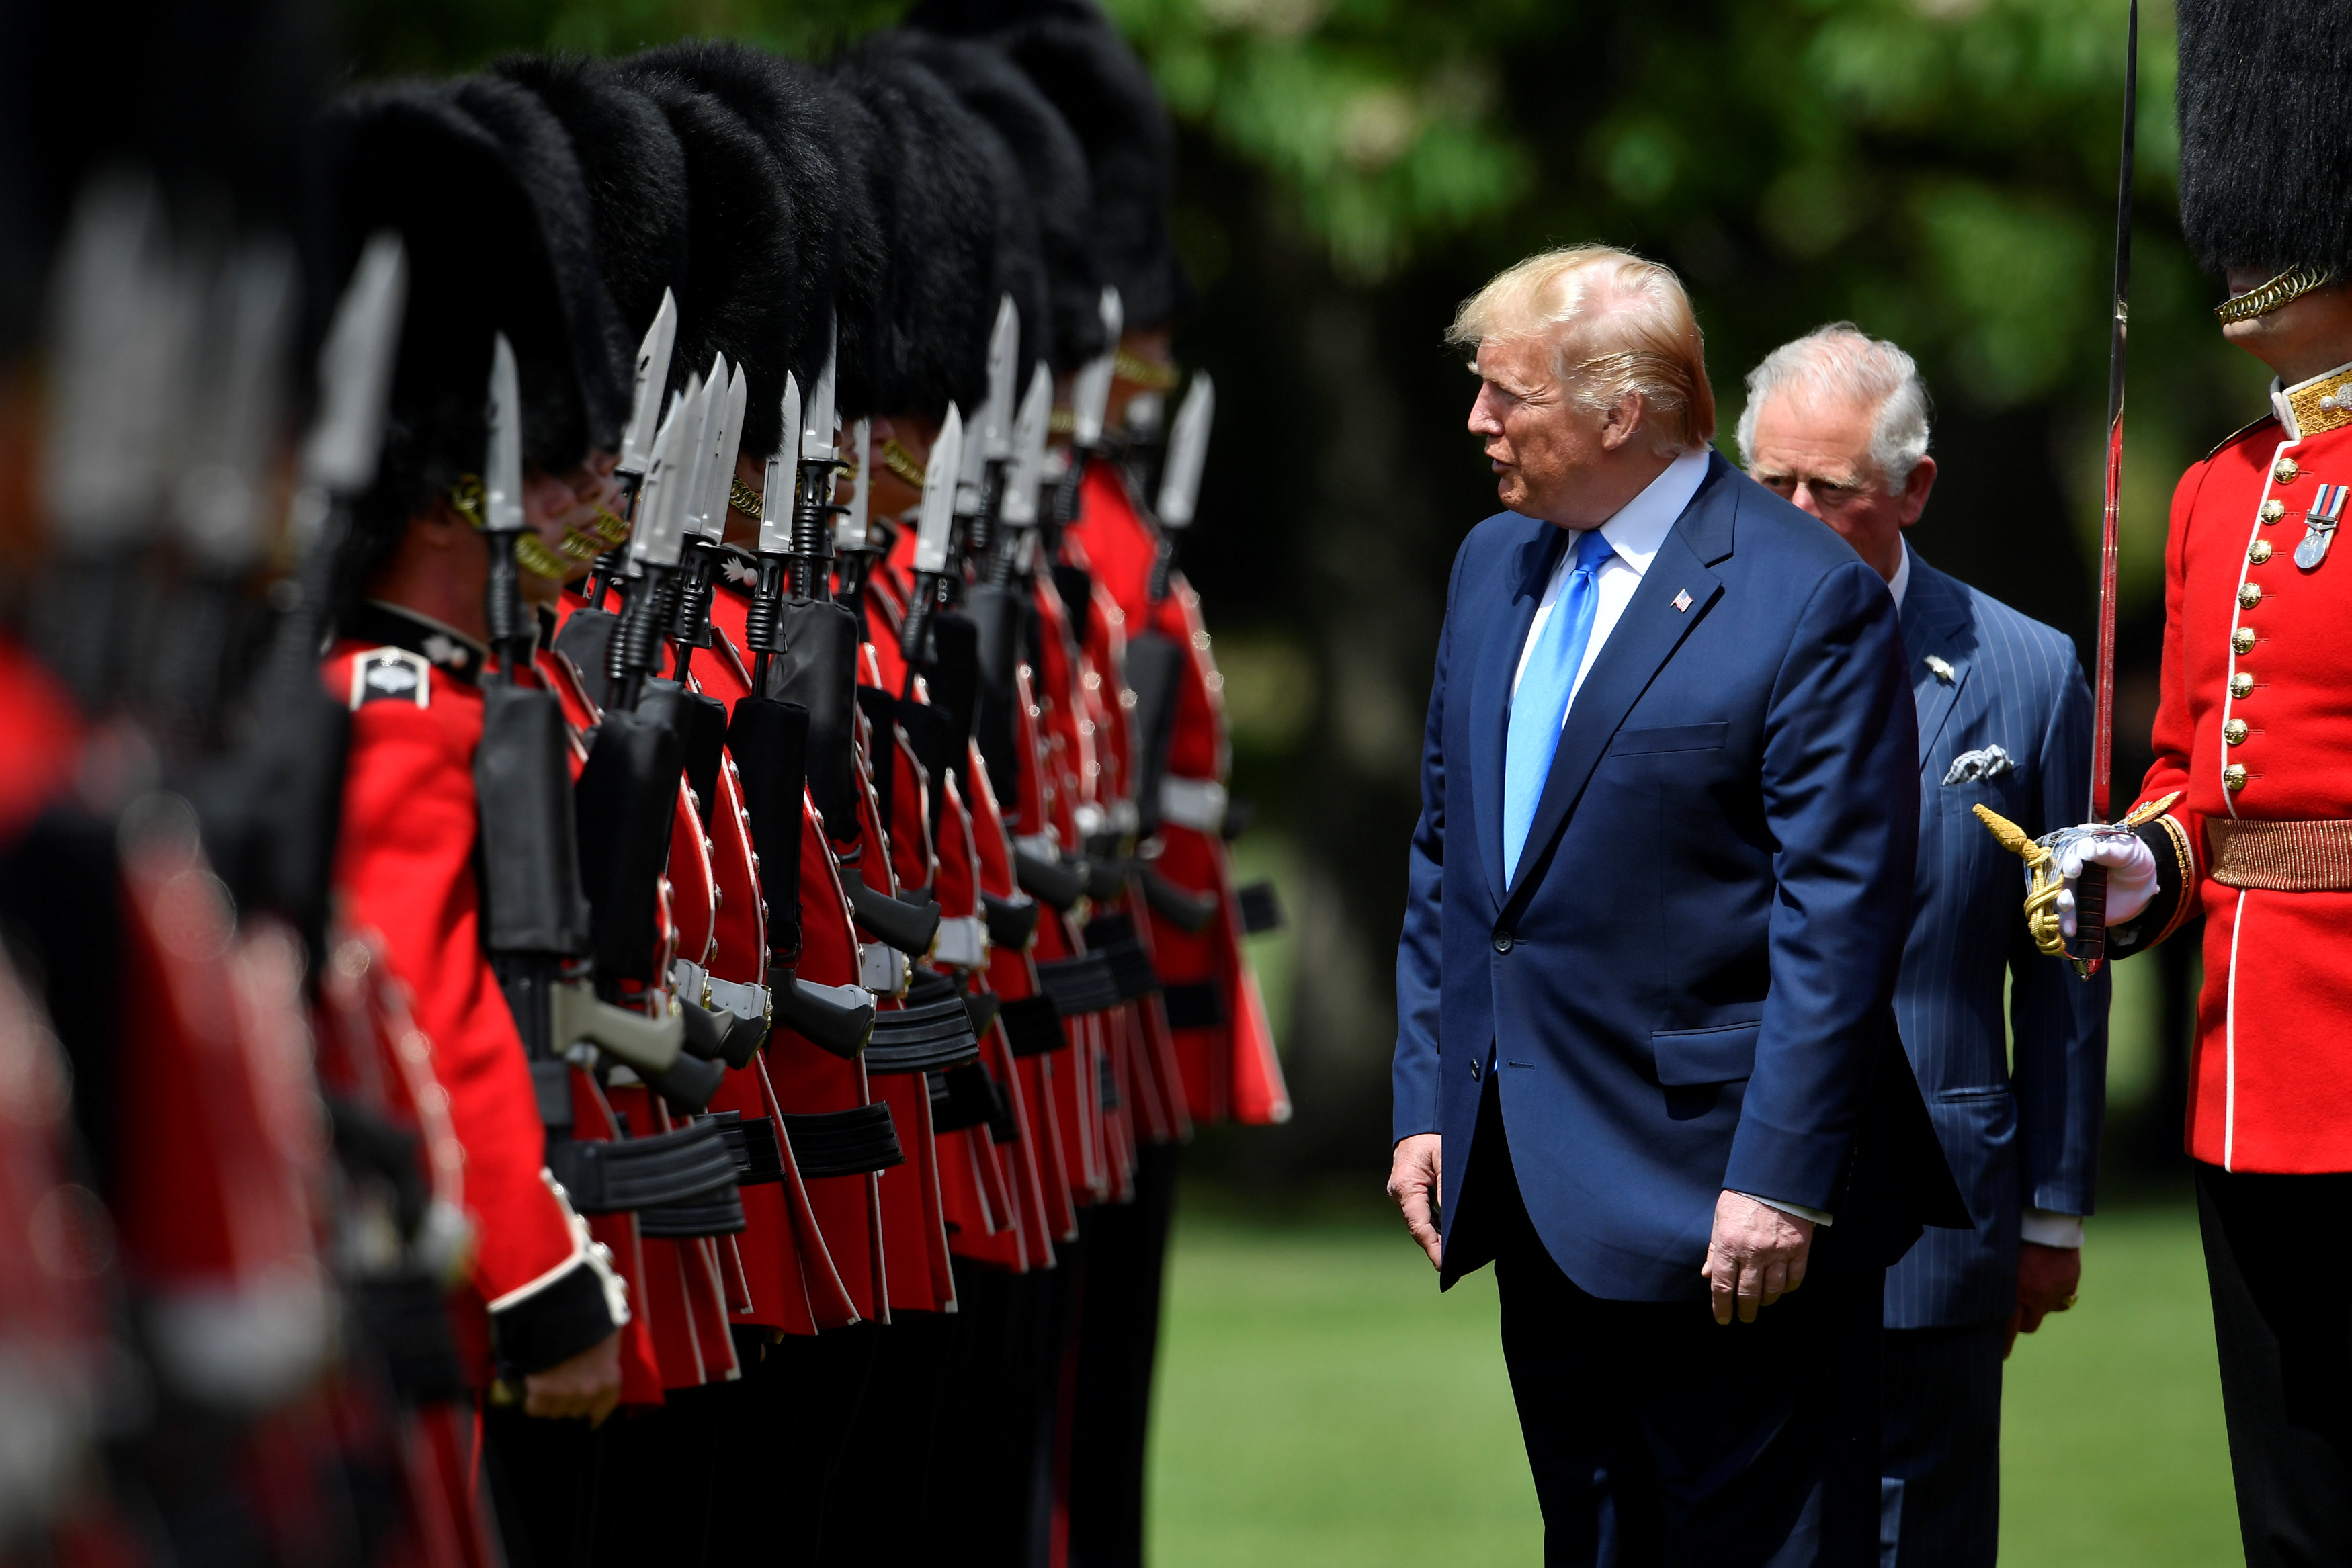 US President Donald Trump (L) inspects the honour guard with Britain's Prince Charles, Prince of Wales (R) during a welcome ceremony at Buckingham Palace in central London on June 3, 2019, on the first day of the US president and First Lady's three-day State Visit to the UK. - Britain rolled out the red carpet for US President Donald Trump on June 3 as he arrived in Britain for a state visit already overshadowed by his outspoken remarks on Brexit. (Photo by TOBY MELVILLE / POOL / AFP)        (Photo credit should read TOBY MELVILLE/AFP/Getty Images)